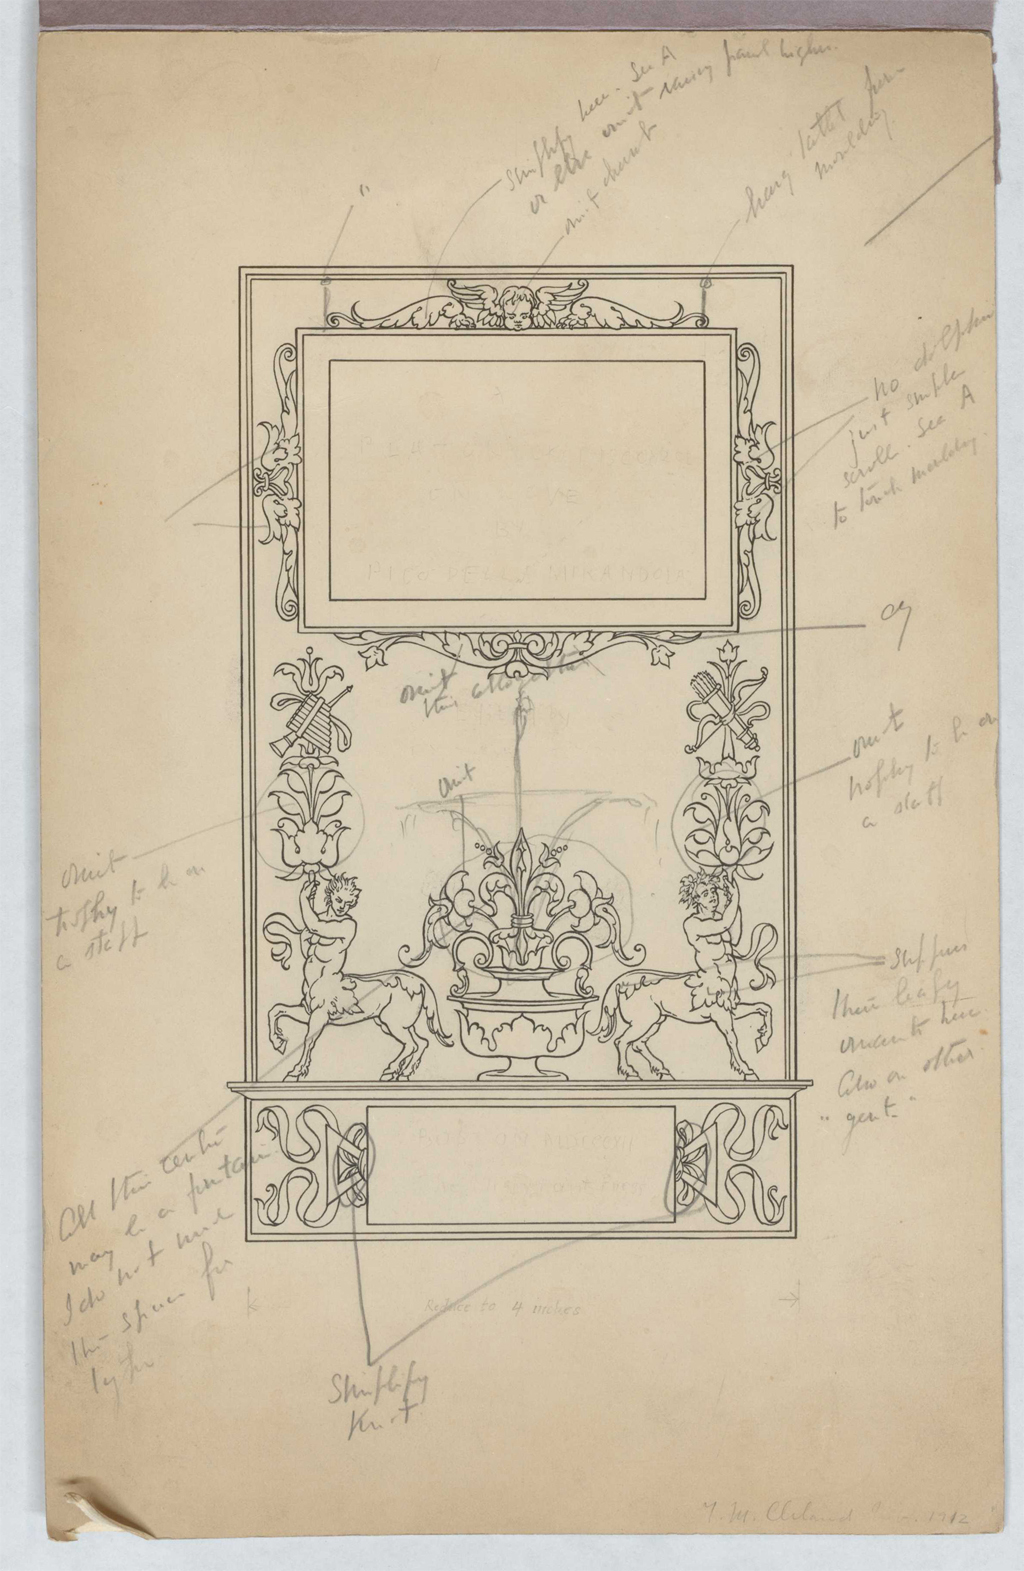 Pen and ink sketch for proposed frame for The Humanists' Library title. 1912?